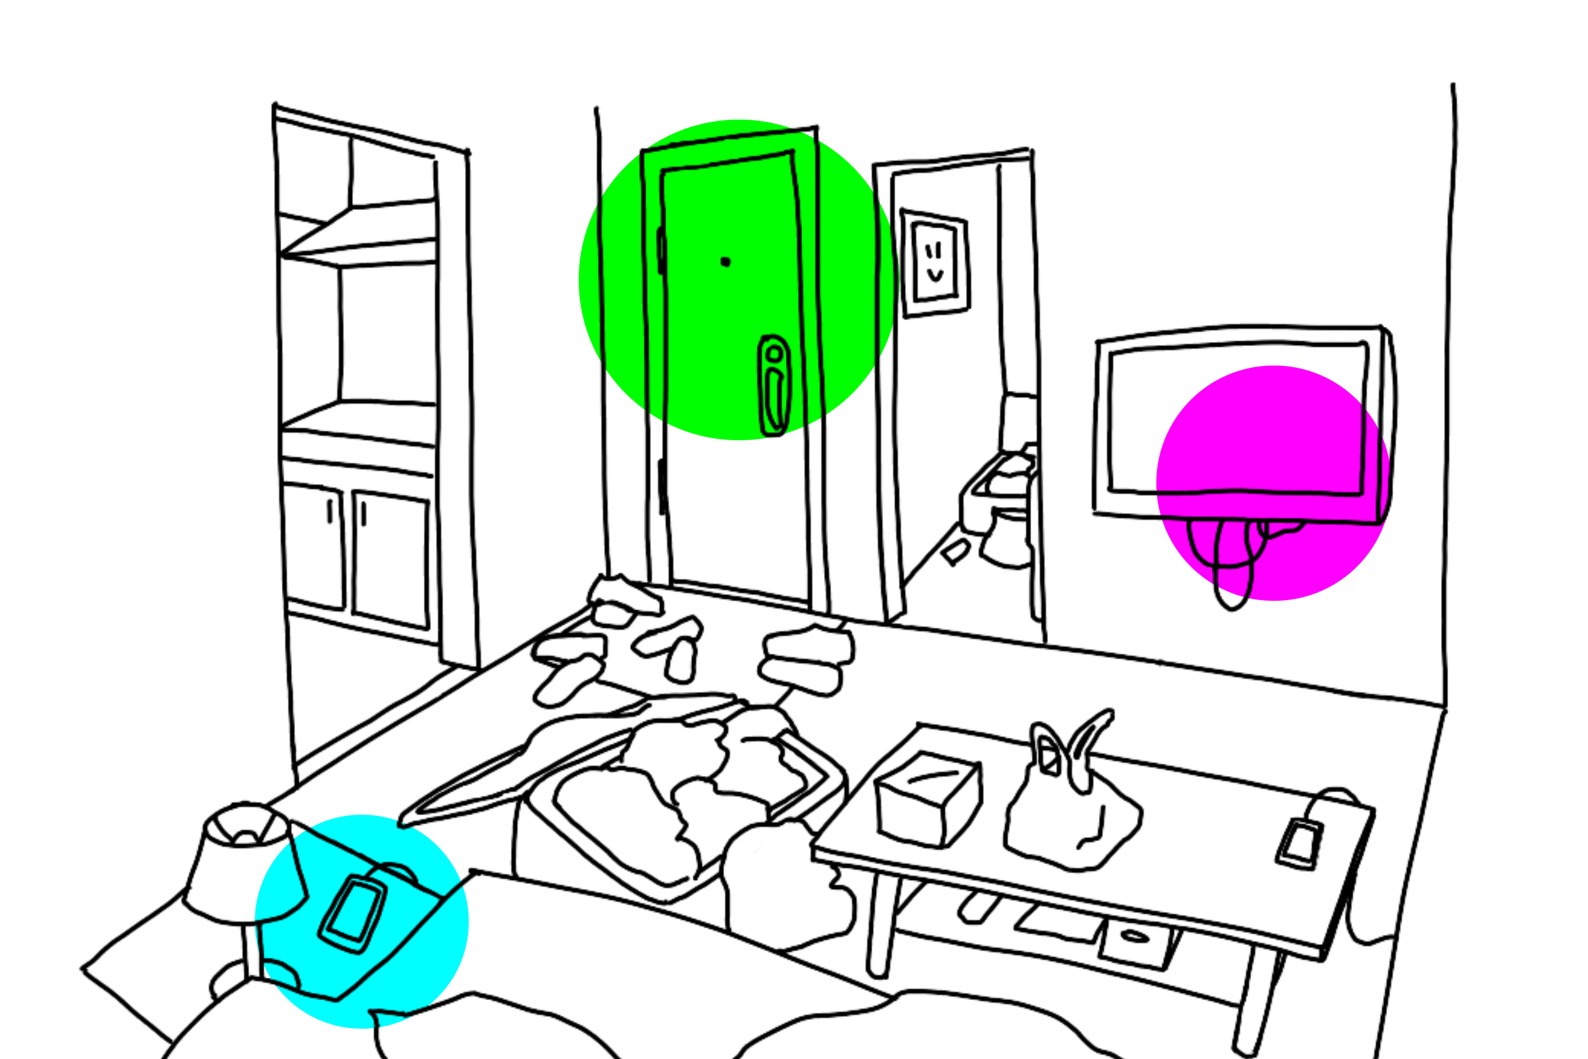 Screenshot of webzine: lineart illustration of a small living room, with an open suitcase overflowing in the center. The image is decorated by 3 solid colored circles highlighting the front door, the TV, and a smartphone on a side table.